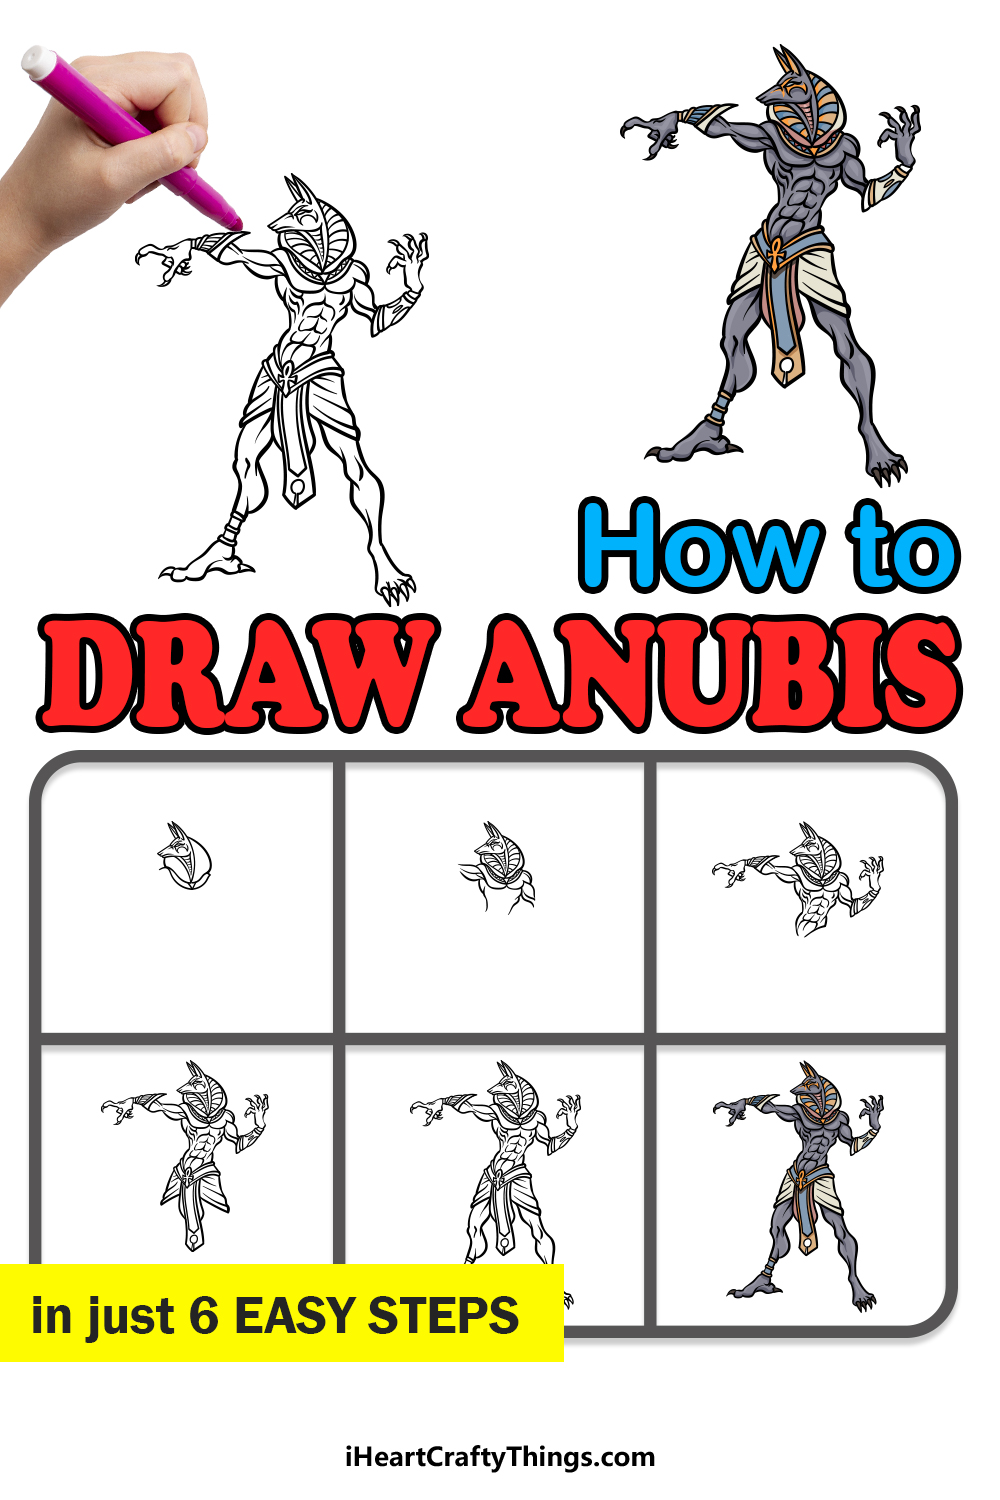 how to draw Anubis in 6 easy steps